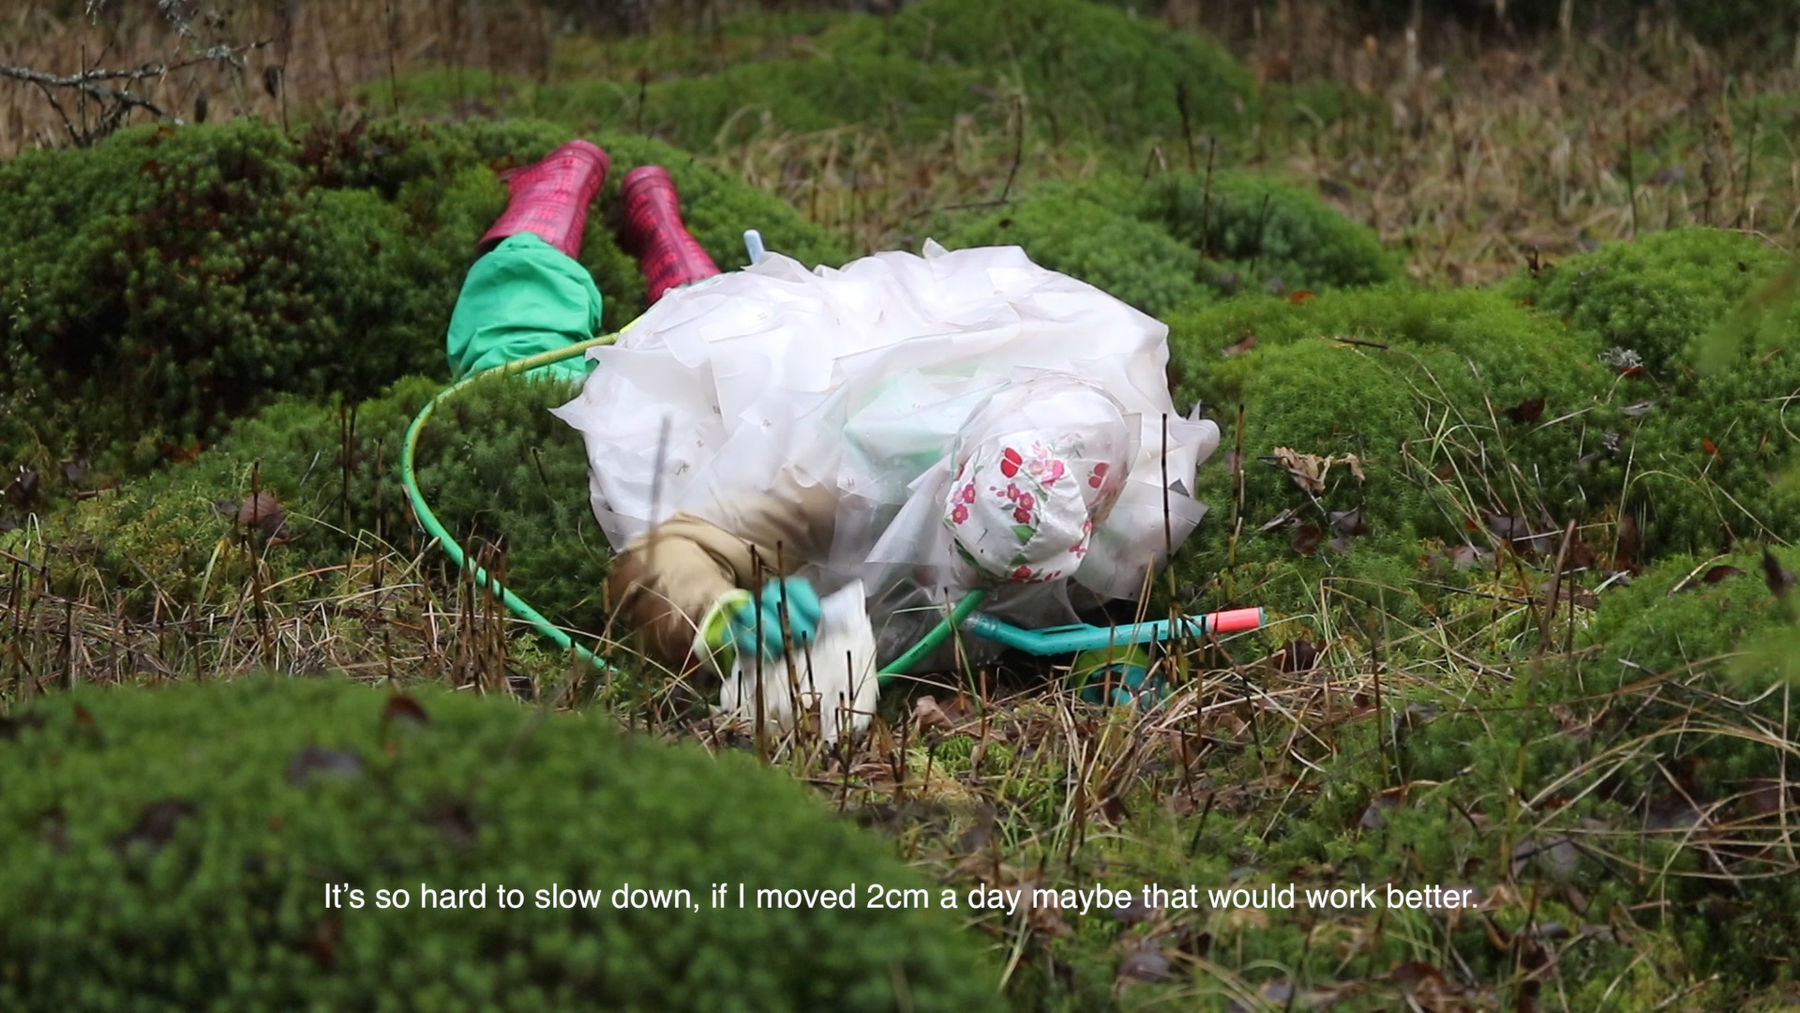 a person in a protective plastic suit lays on the ground in the woods exploring the bog and saying: 'It's so hard to slow down, if I moved 2cm a day maybe that would work better.